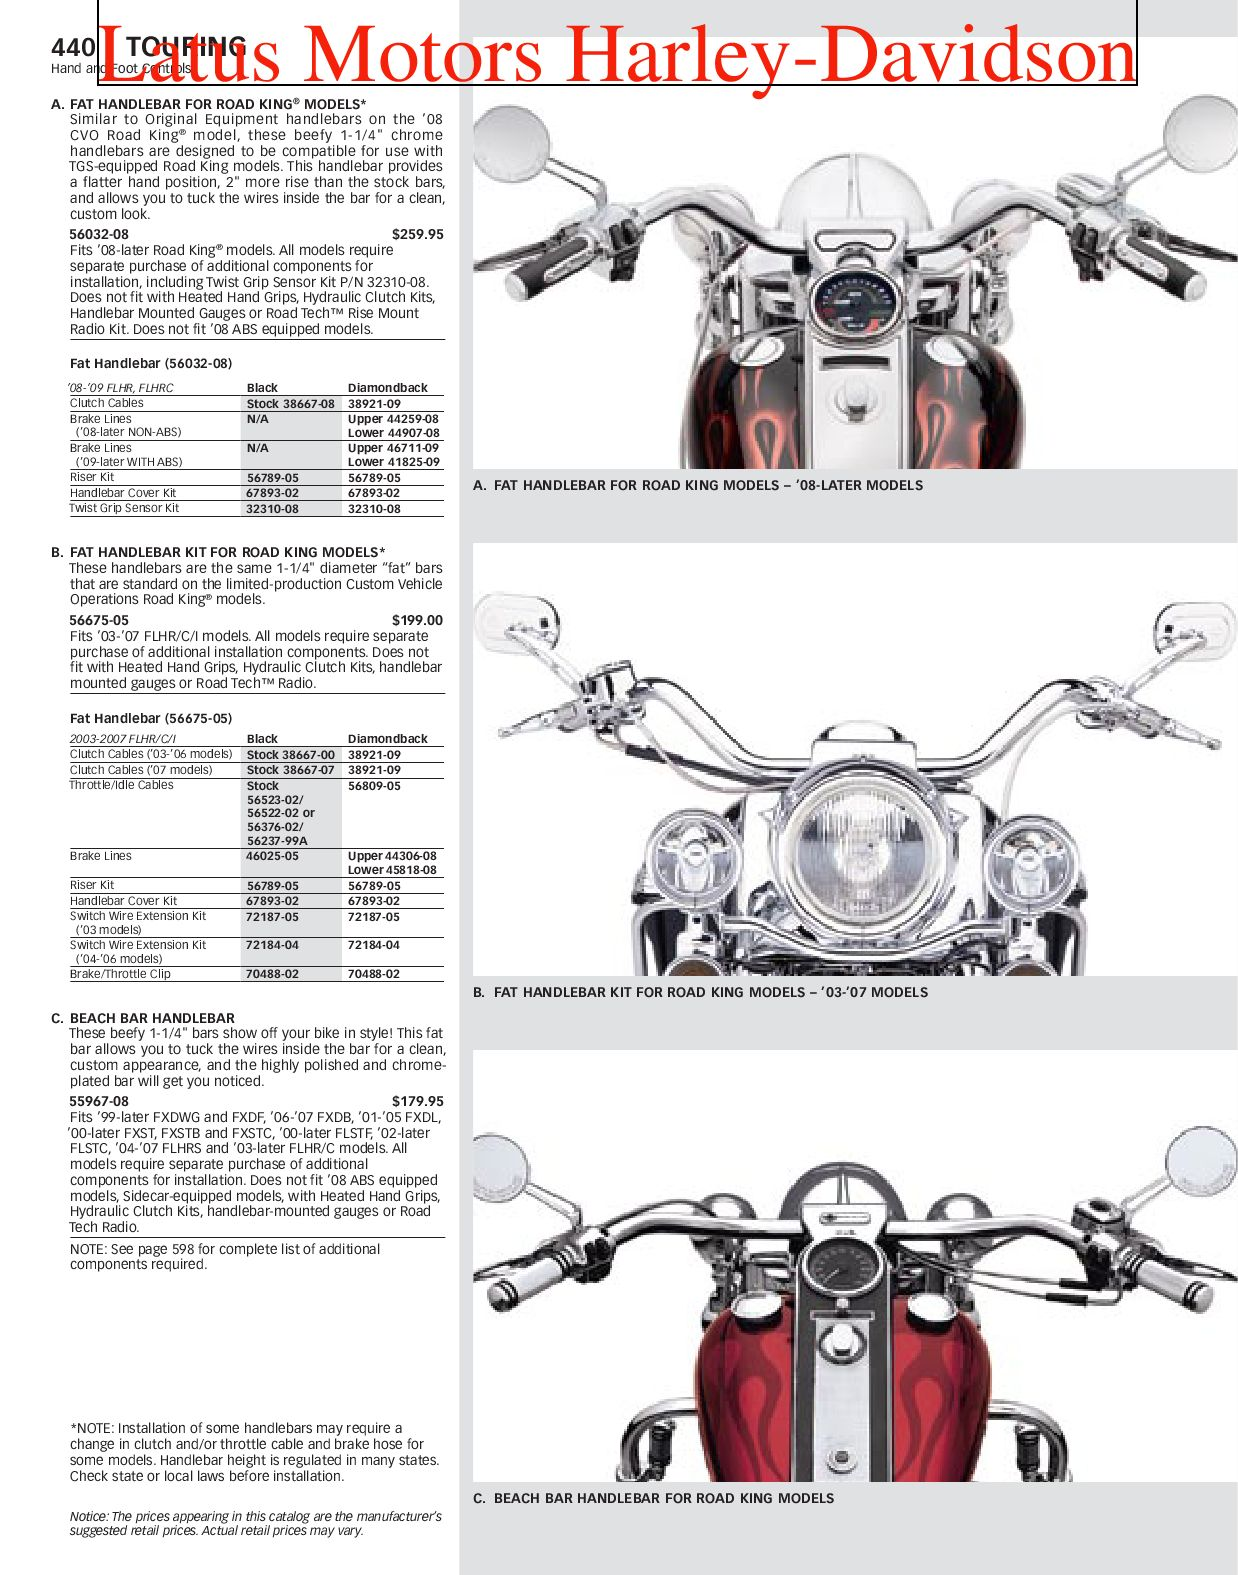 Harley Heated Grips Wiring Diagram | Wiring Library